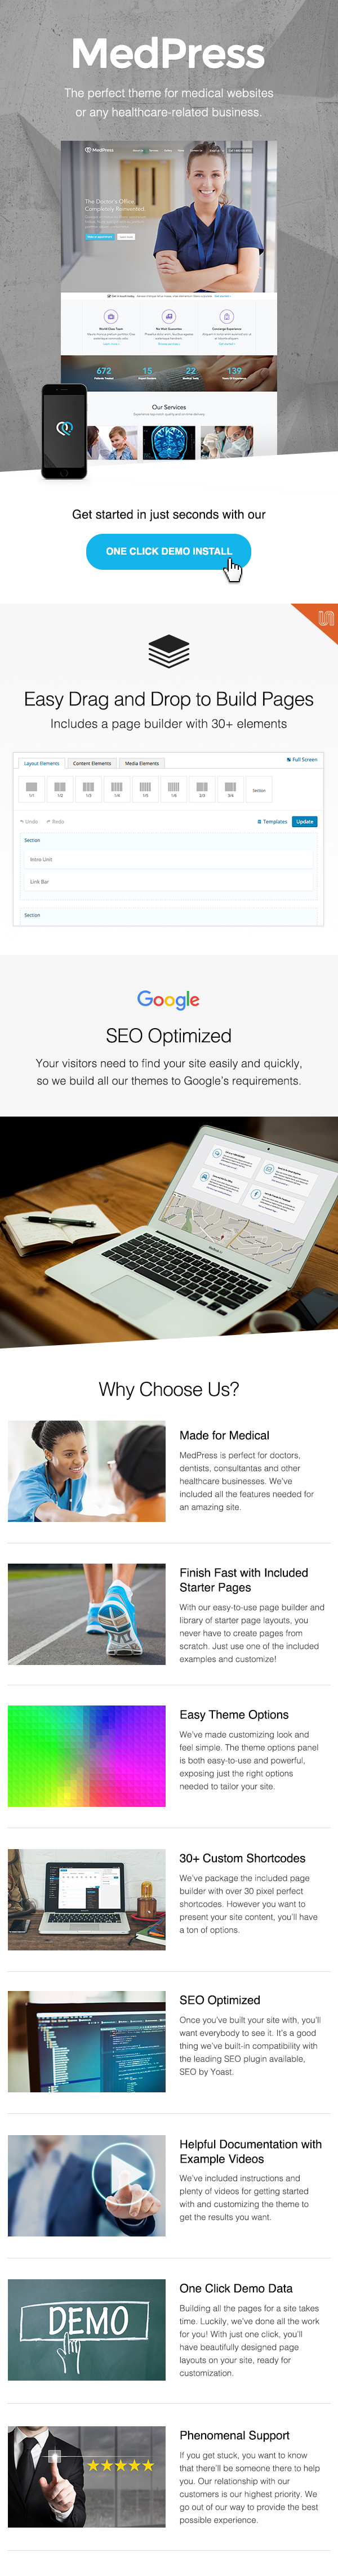 wordpress subcategory template - medpress premium medical and healthcare wordpress theme